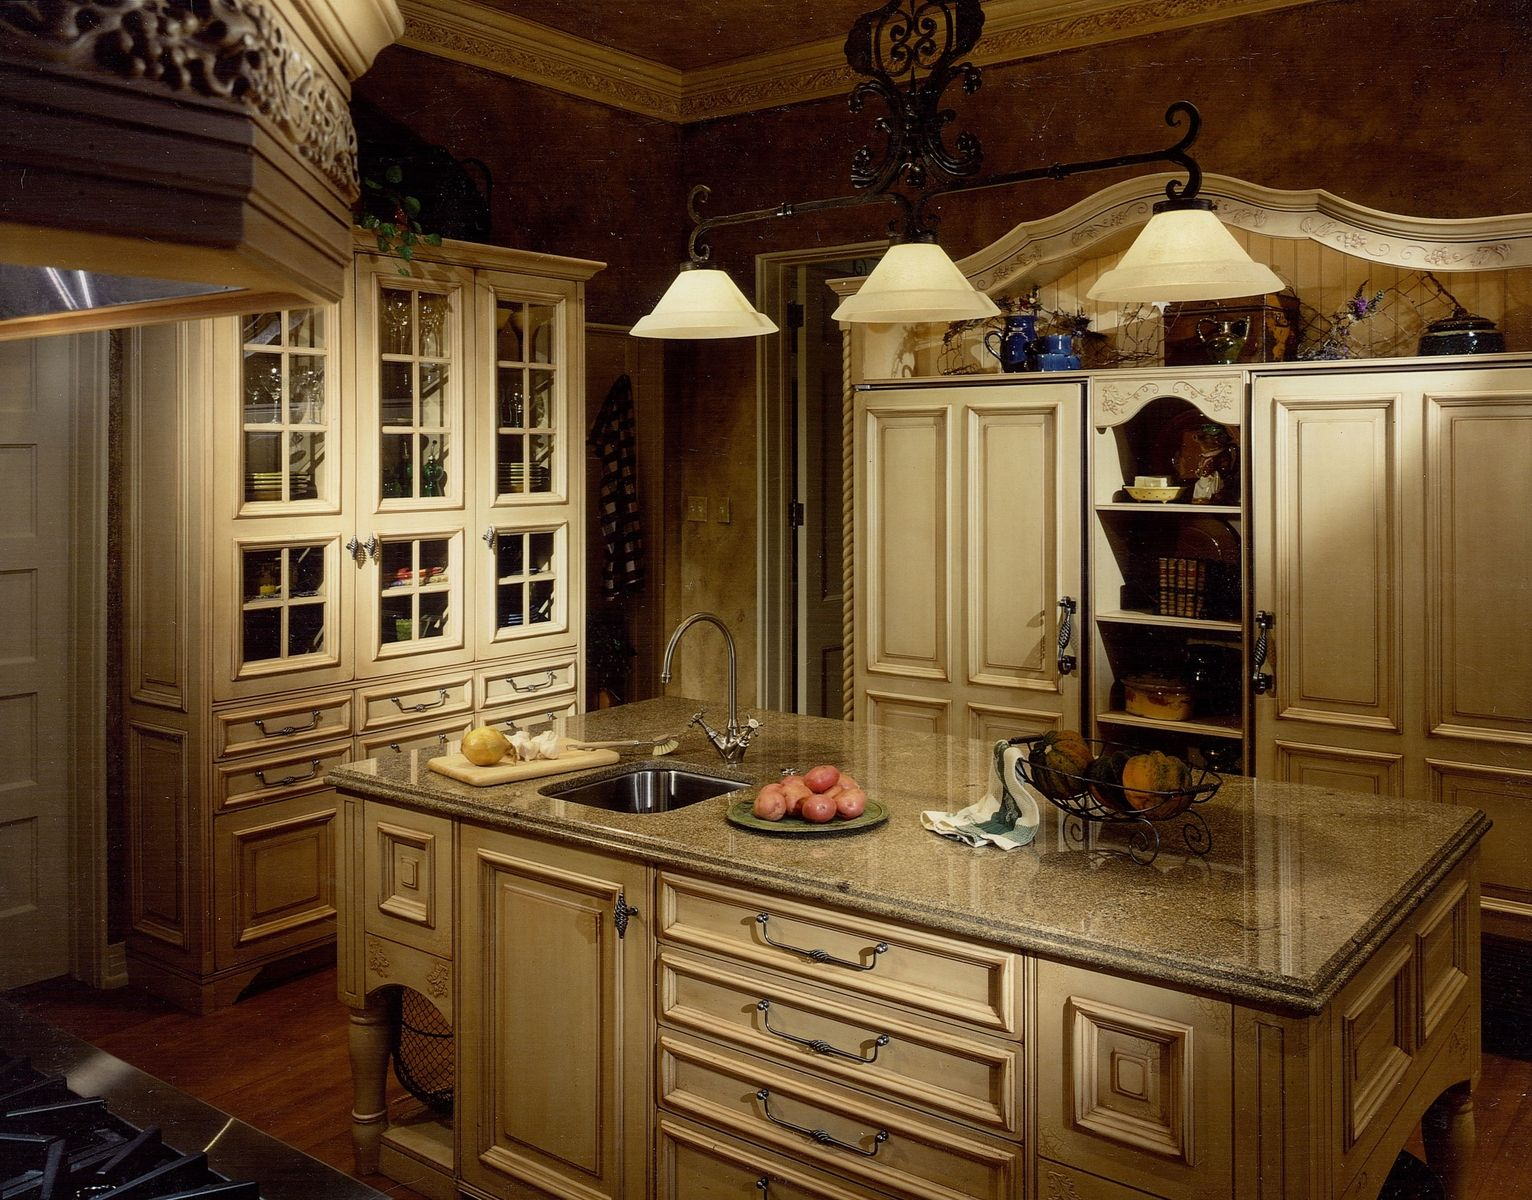 Handmade Furniturizing A French Country Kitchen Remodel by ...